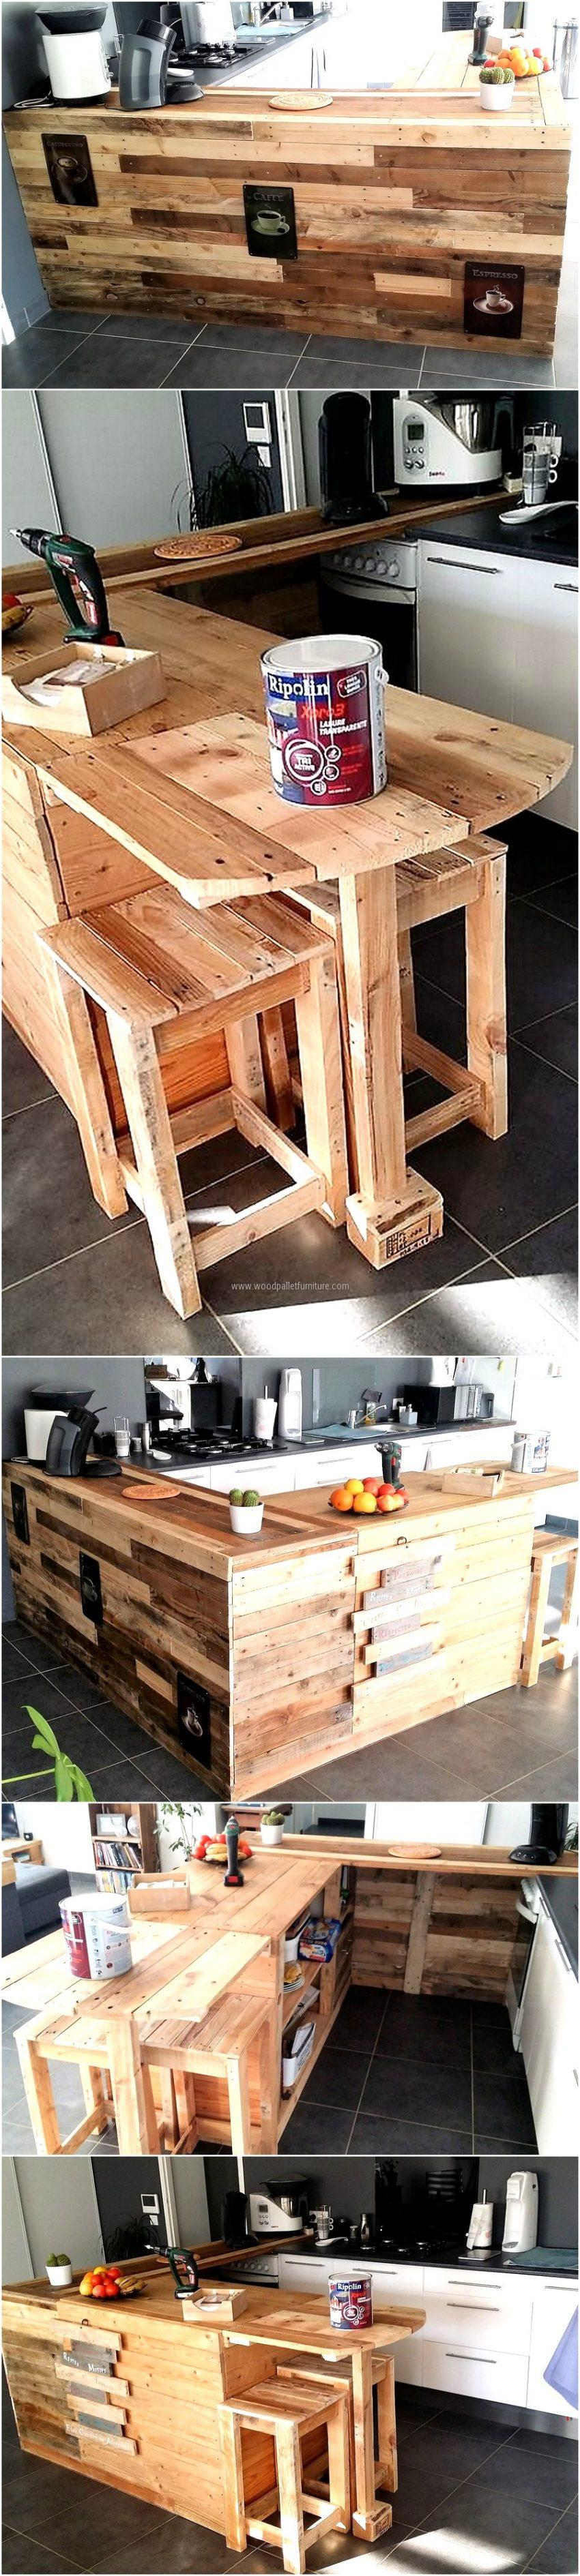 Repurposed Pallet Kitchen with Attached Seating